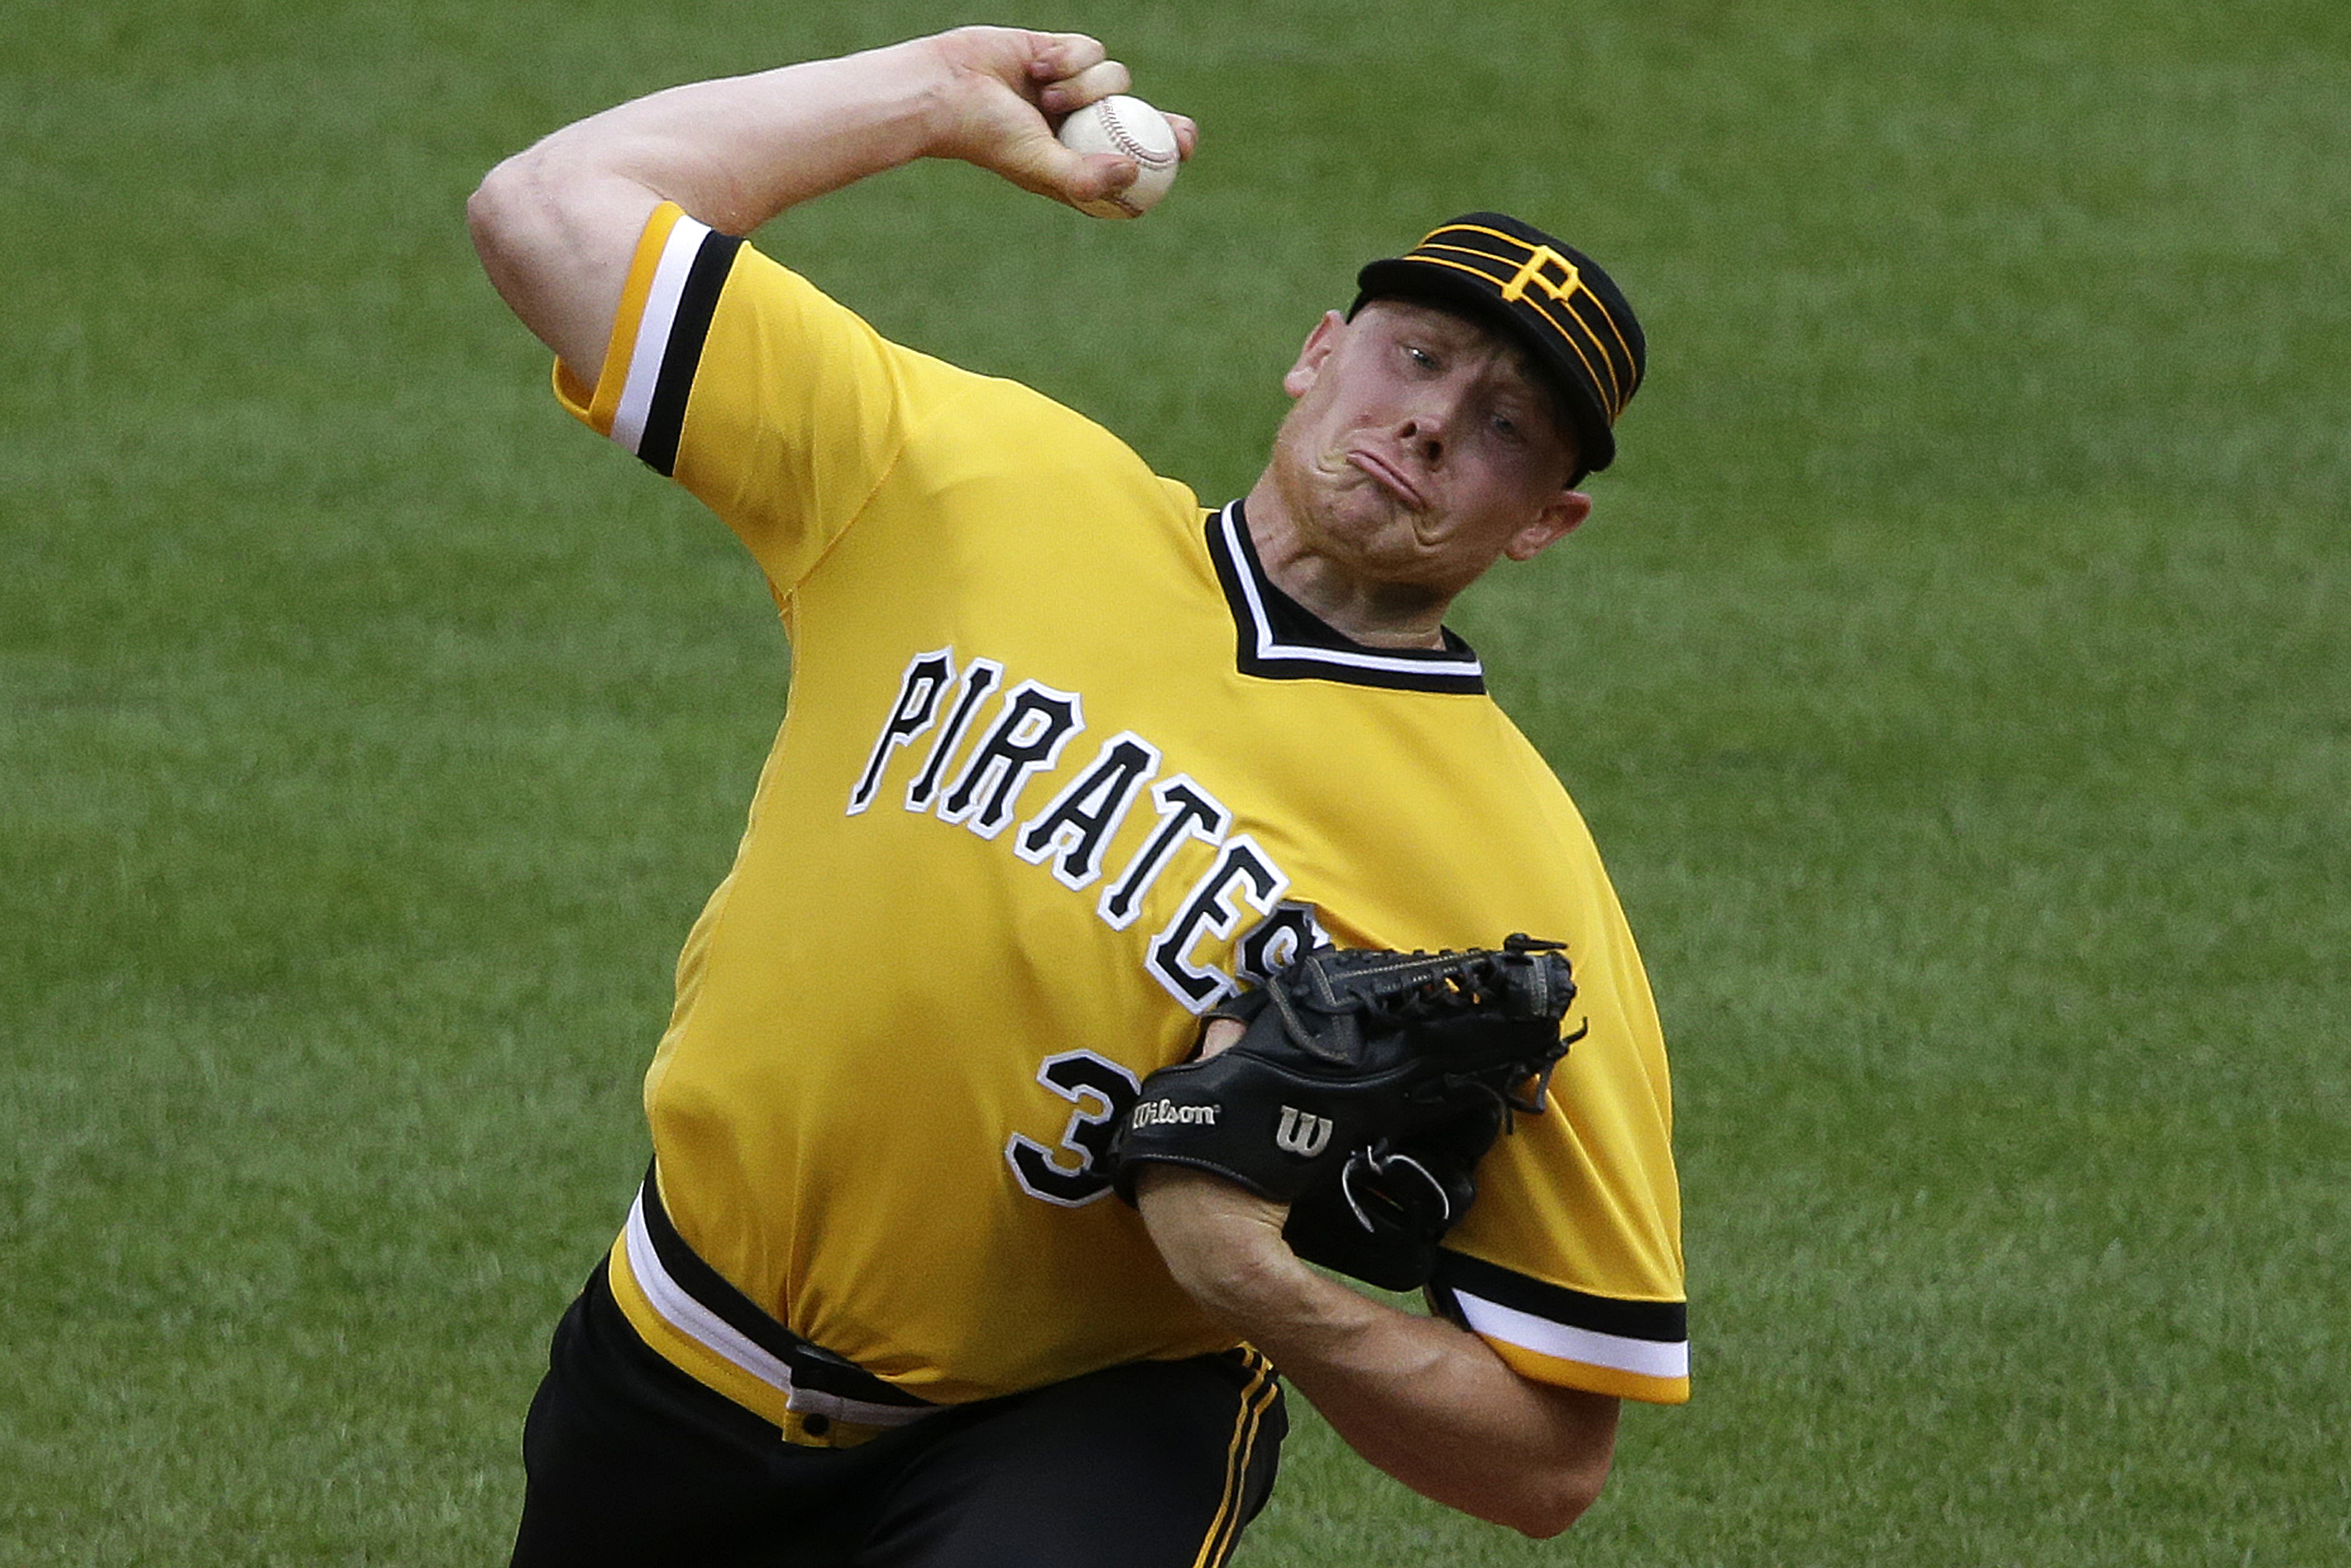 Pittsburgh Pirates closer Mark Melancon delivers in the ninth inning of a baseball game against the Philadelphia Phillies in Pittsburgh, Sunday, July 24, 2016. (AP Photo/Gene J. Puskar)